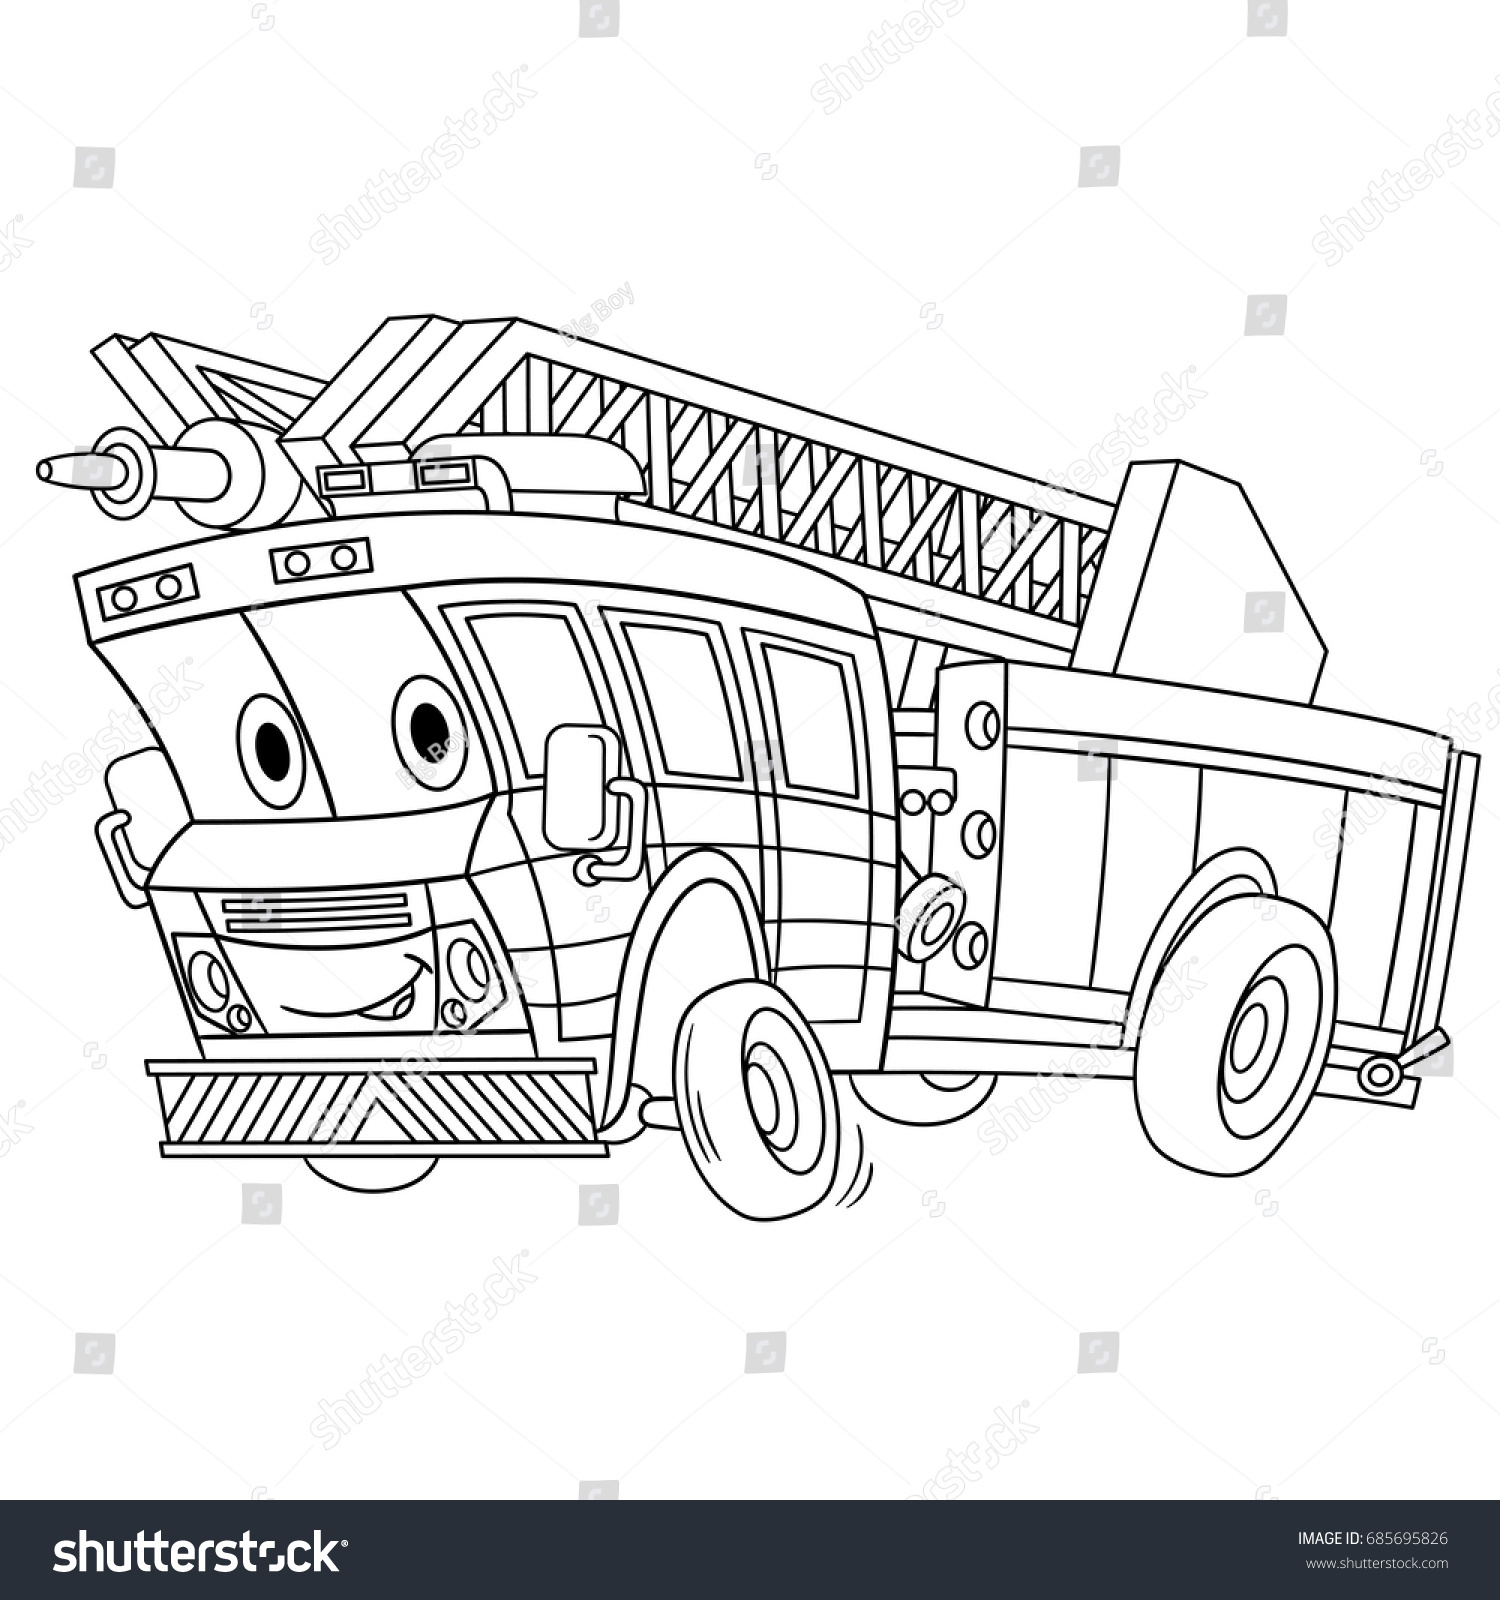 coloring page cartoon fire truck emergency stock vector 685695826